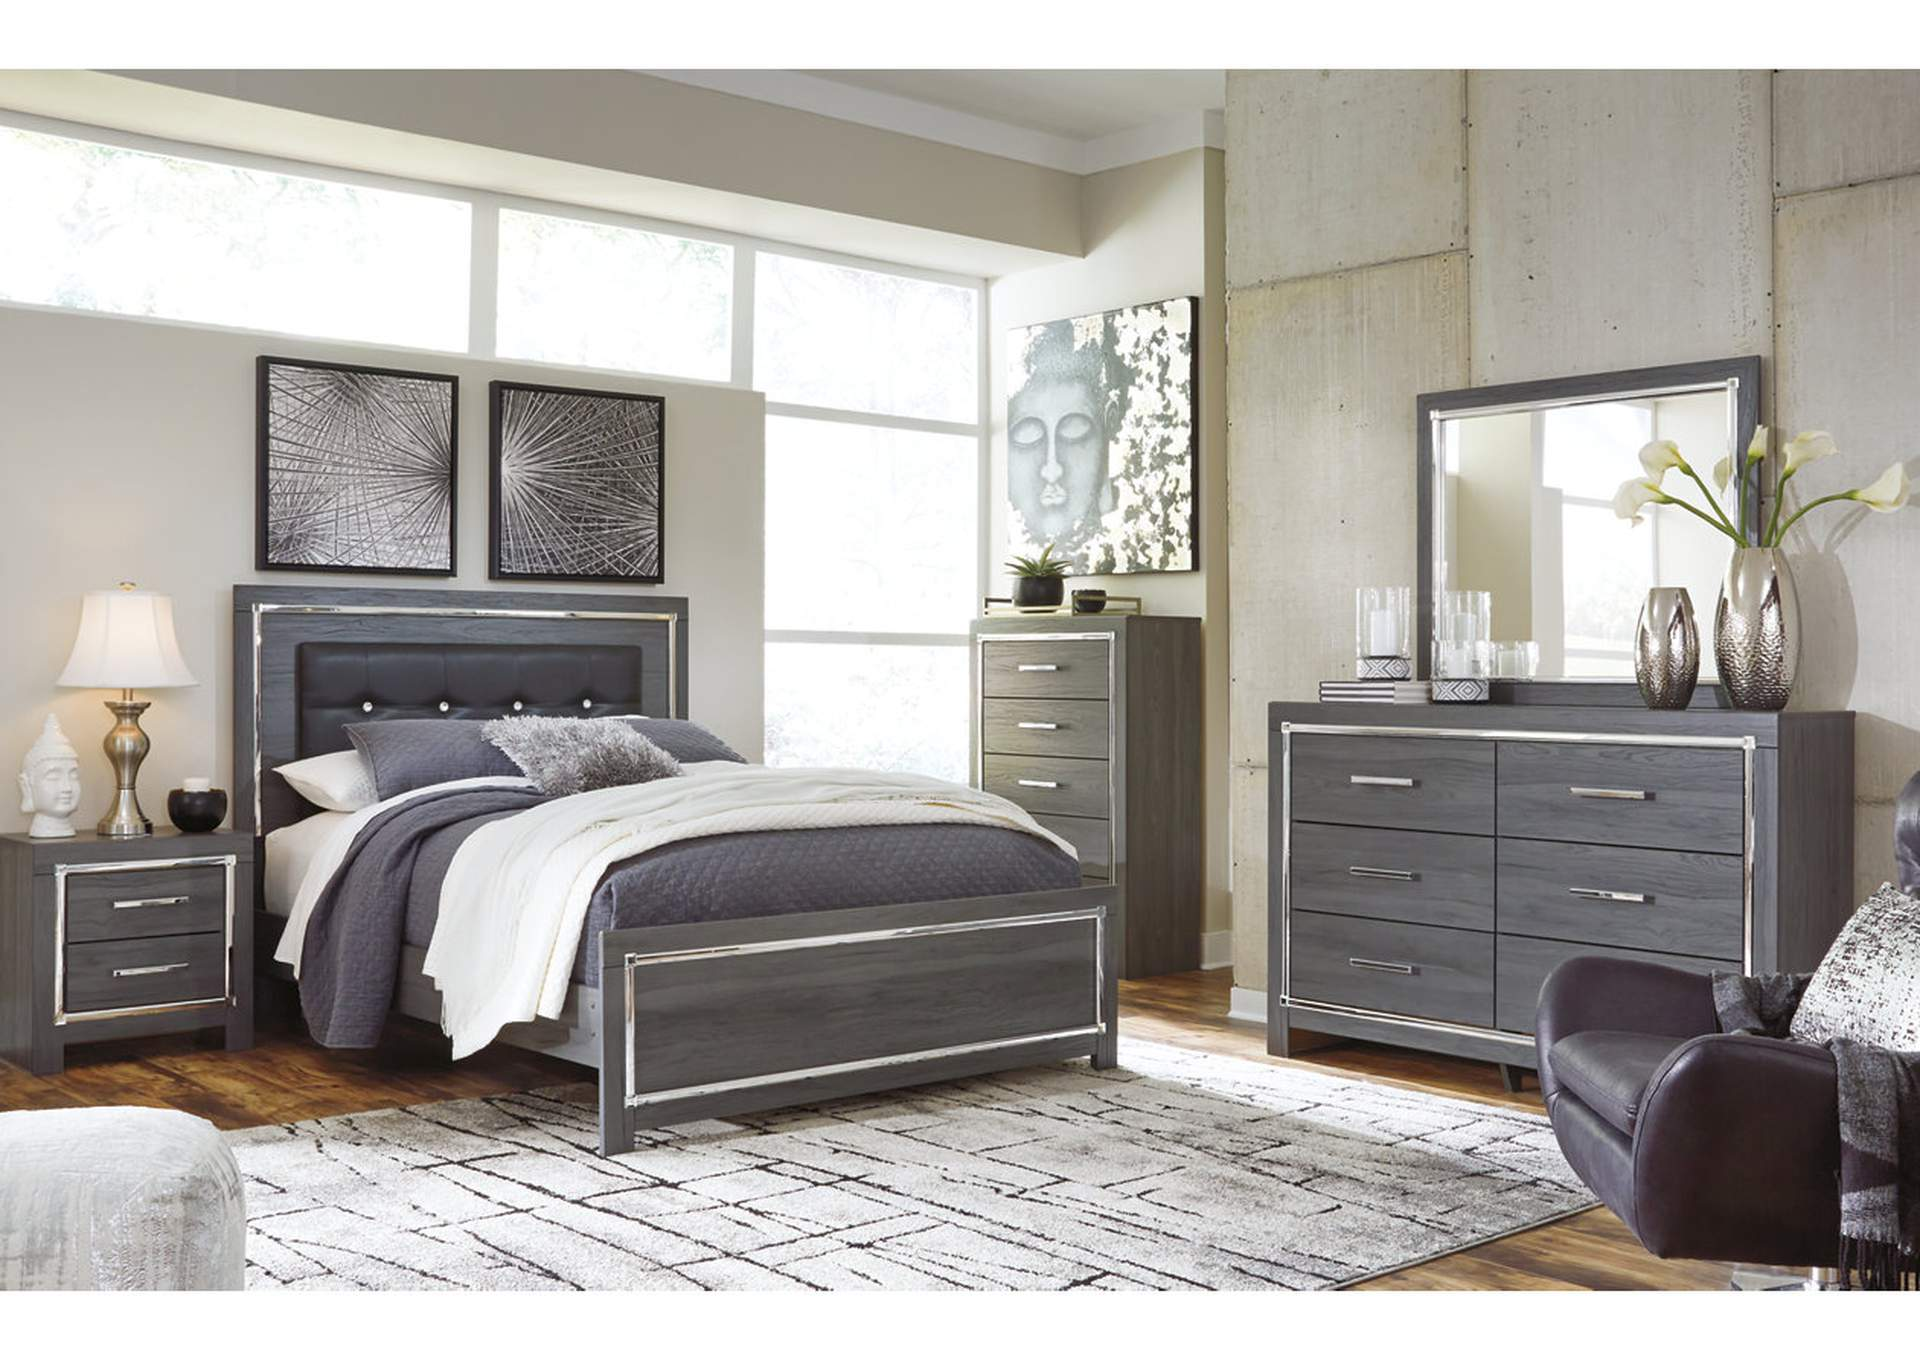 Lodanna Queen Panel Bed with Dresser and Mirror,Signature Design By Ashley